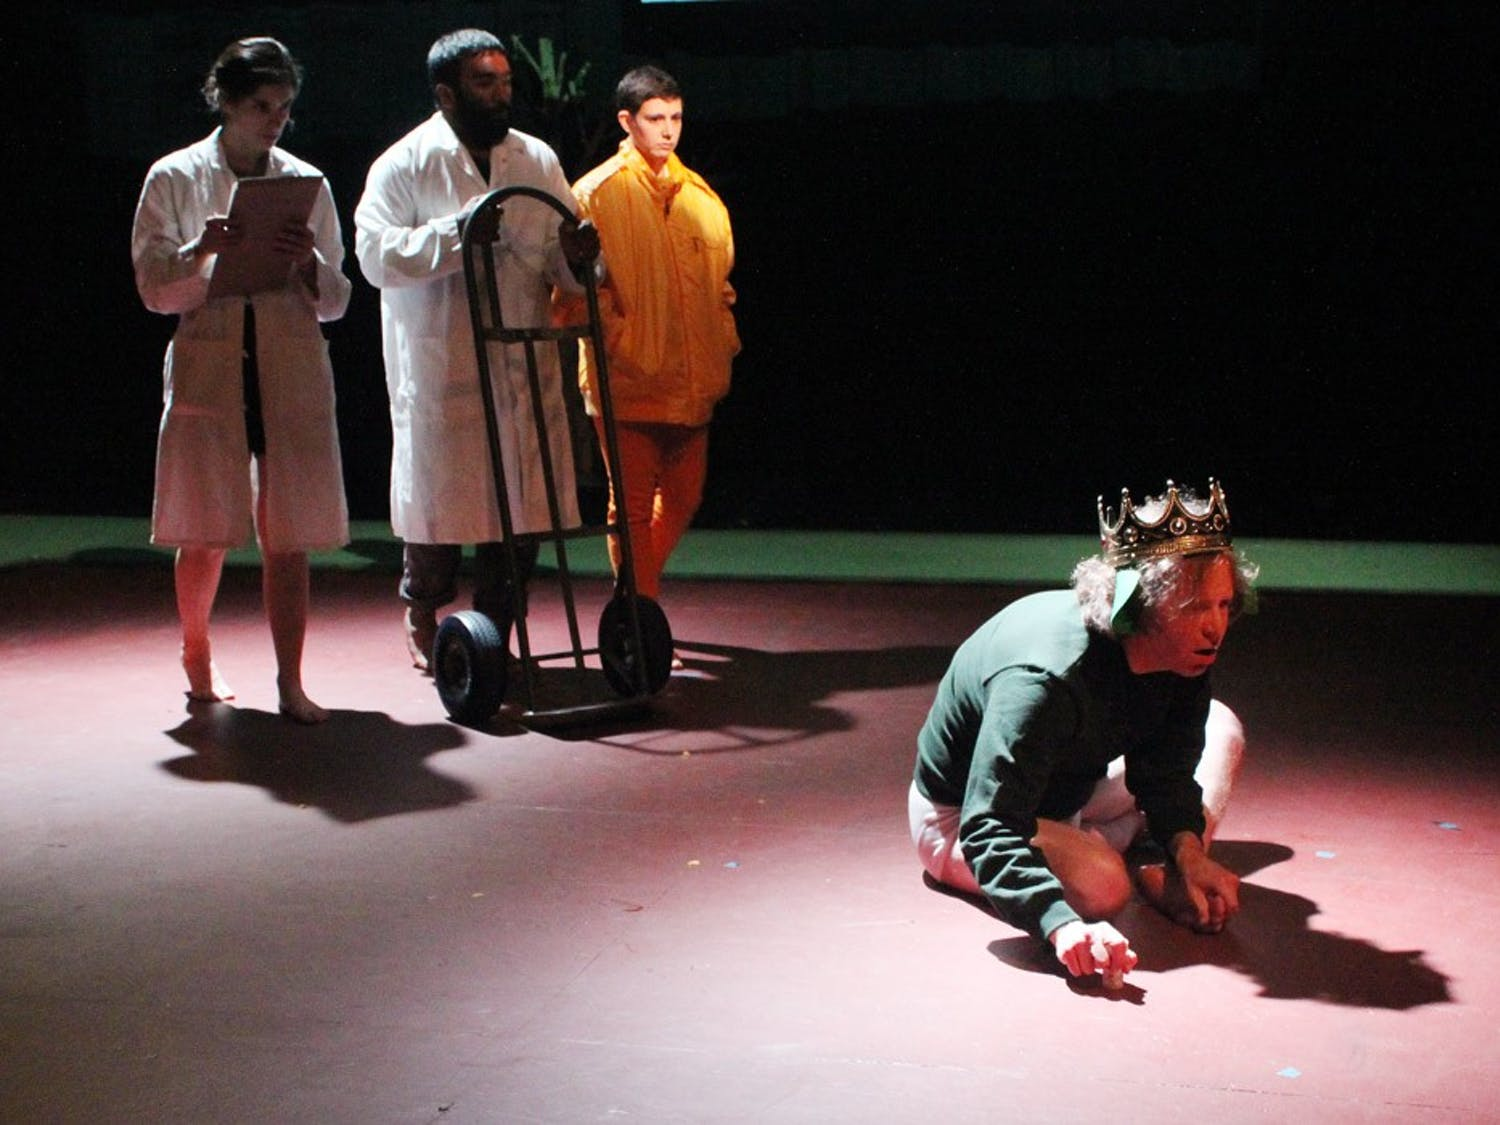 Cameron Ayres (right), playing the character of Lamb, rehearses a scene in which he is approached to receive treatment.